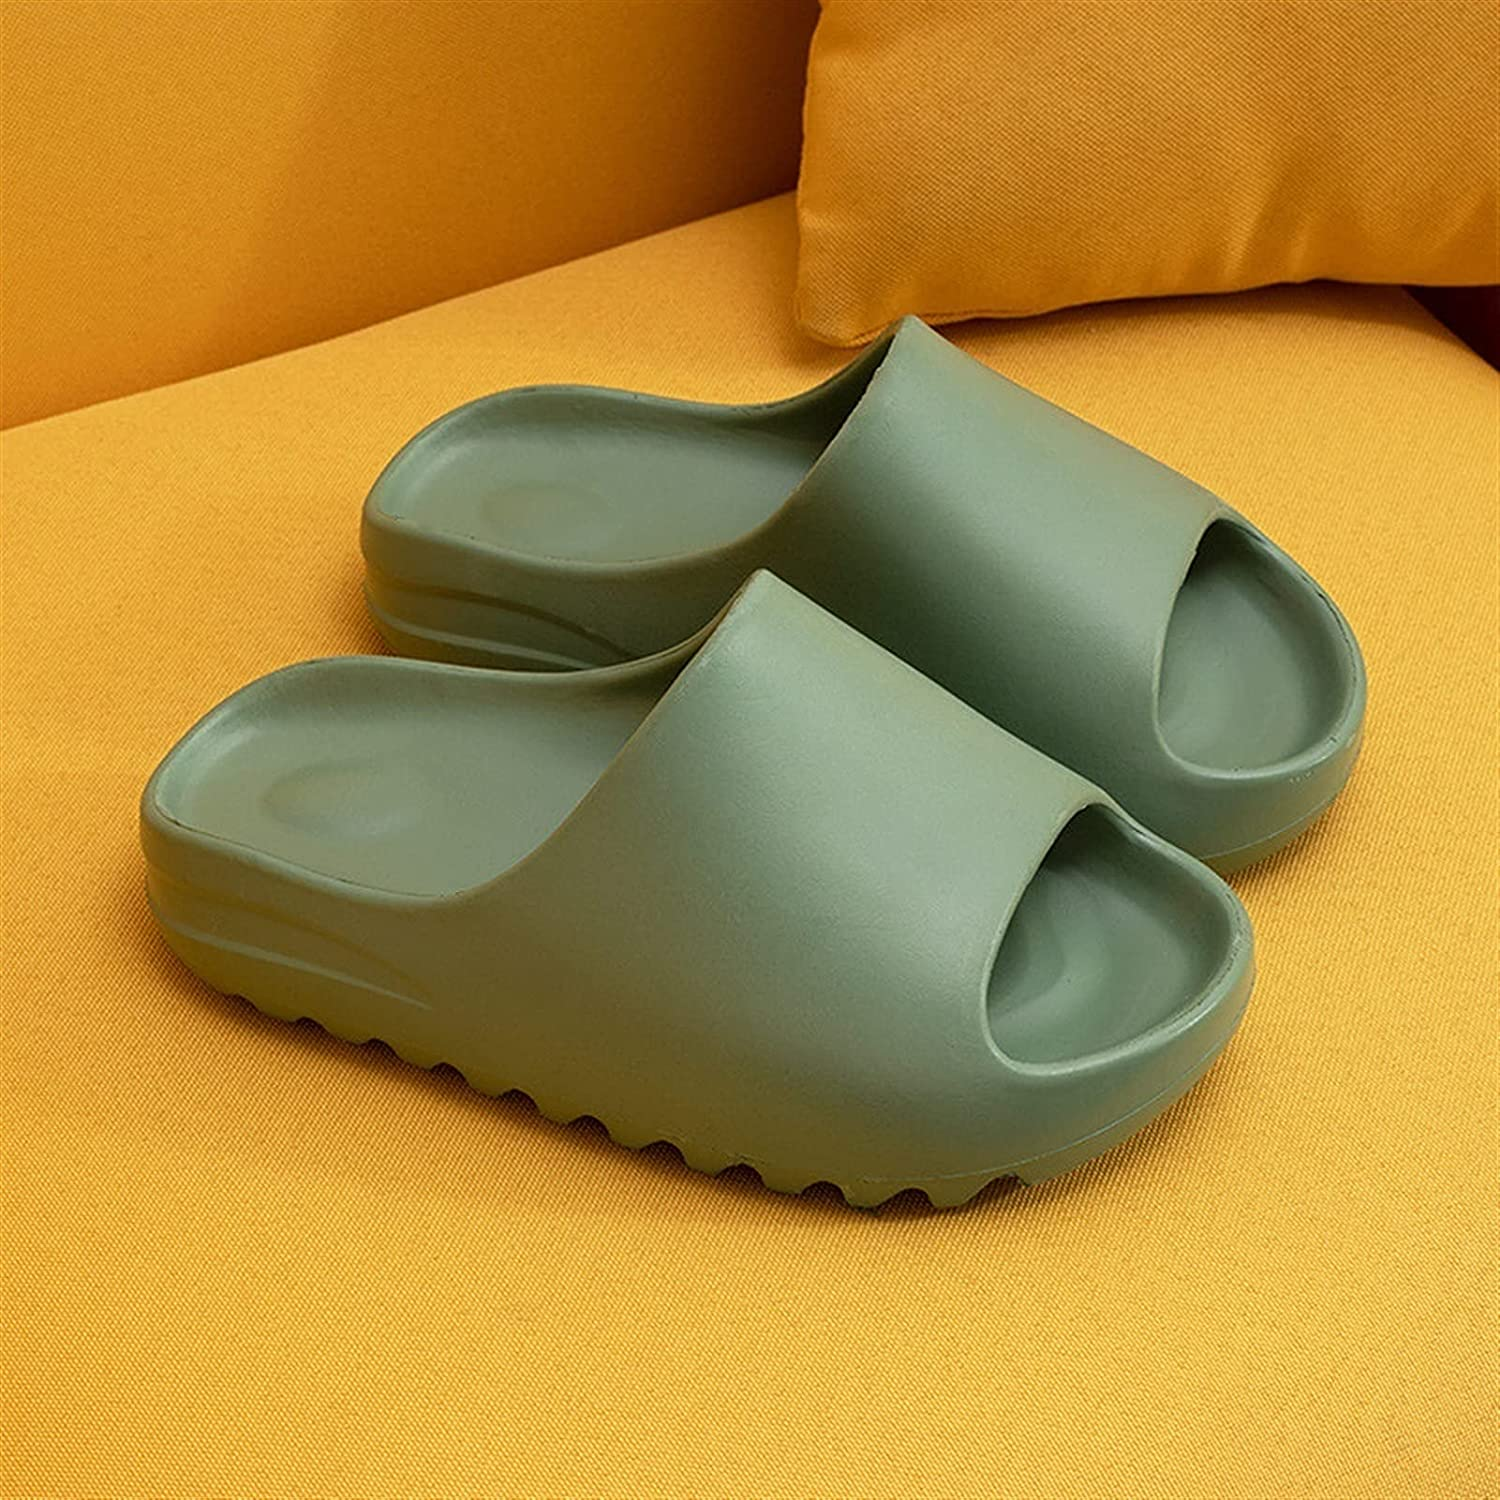 zyxzly Open Toe Pillow Slides for Women and Men-Non-Slip EVA Bath Slippers Flip Flop Open Toe Soft Sandals Casual House Sandals for Indoor & Outdoor Thick Sole Home Floor Slipper,EVA Platform